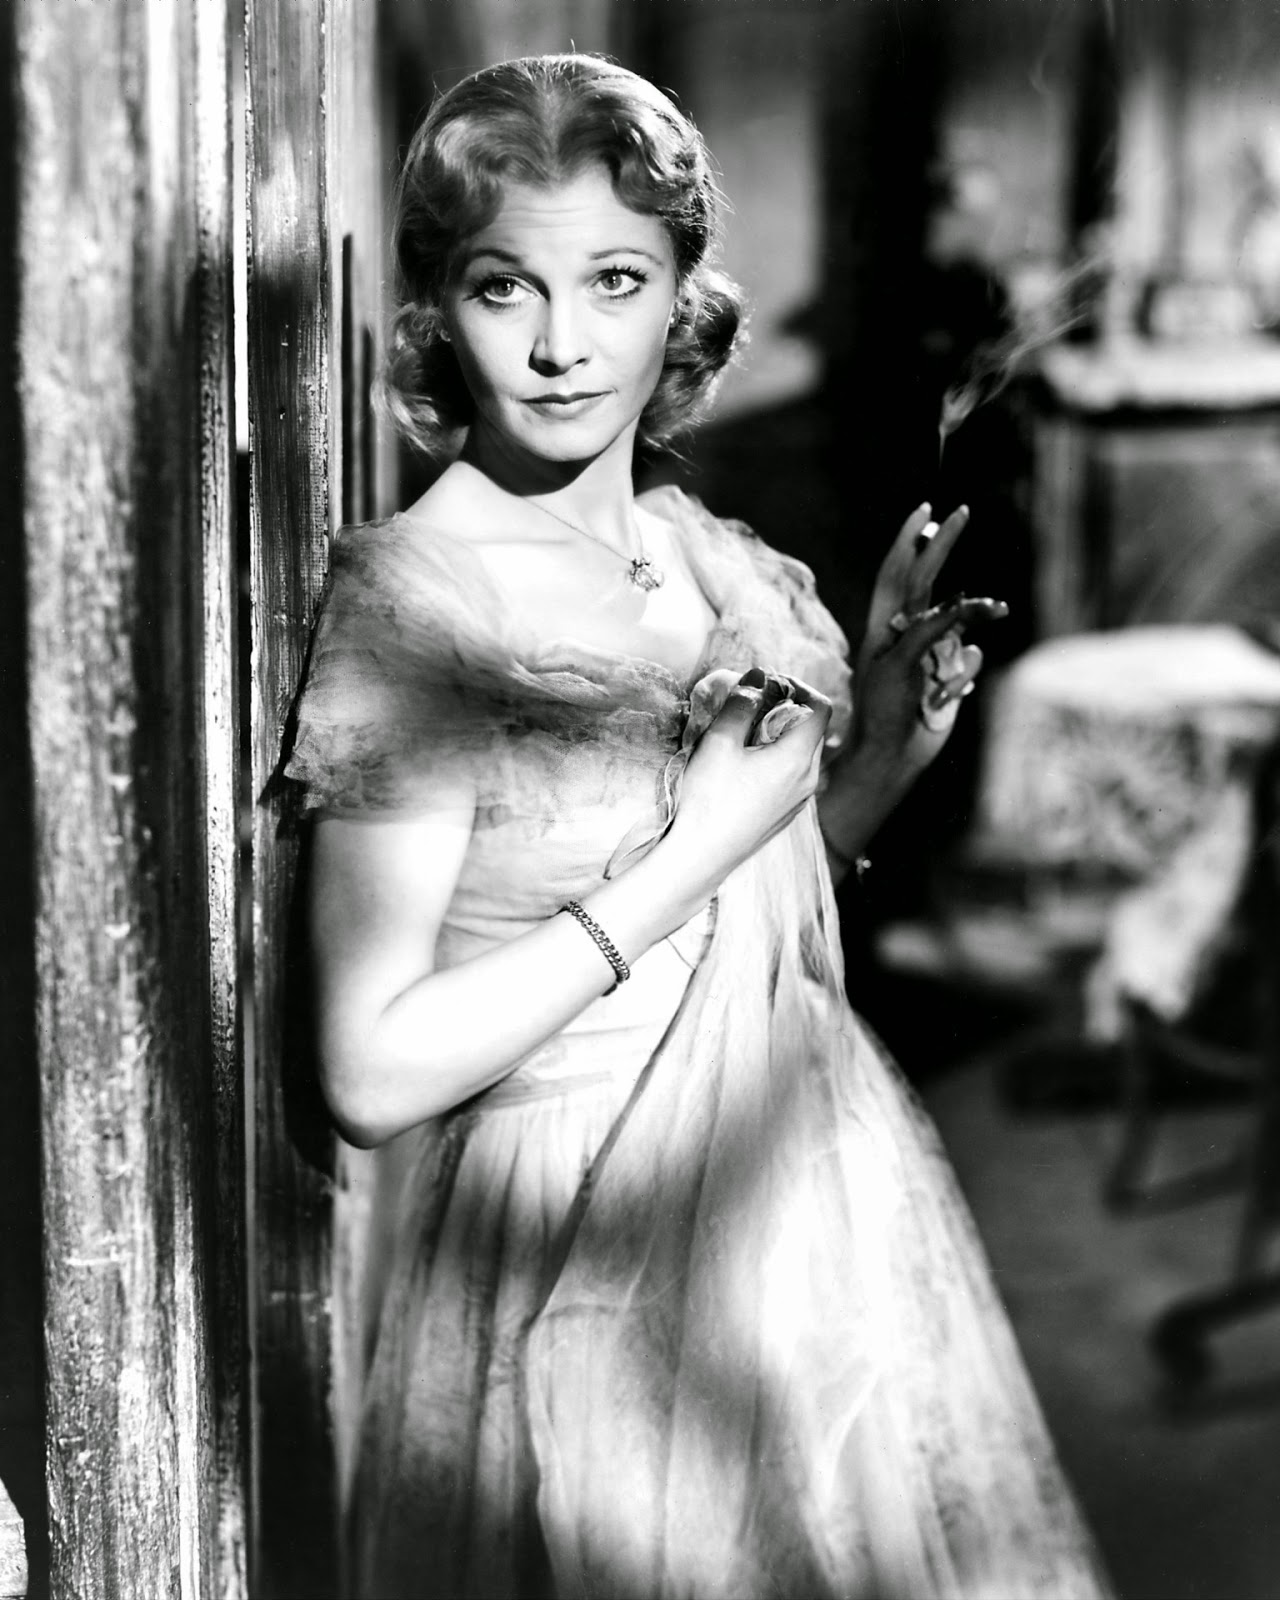 an analysis of blanche dubois in a streetcar named desire by tennessee williams A streetcar named desire is a landmark american drama of the twentieth century some of the major themes of the play are explored, with reference to selected contemporary critical reflections on tennessee williams' play.